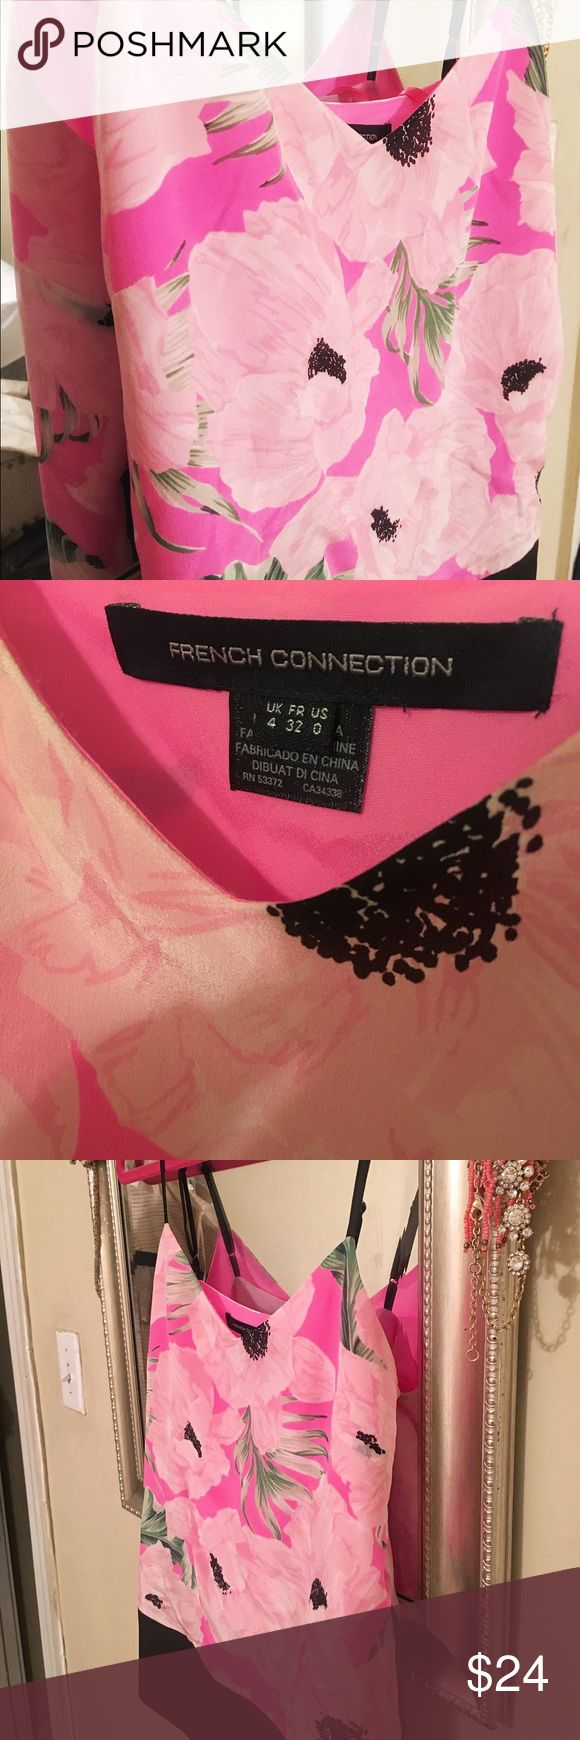 French Connection pink floral silk summer camisole French Connection, US 2, never worn silk tank. Gorgeous bright pink floral print, black spaghetti straps. Great for brunching, bar hopping or sprucing up business attire. French Connection Tops Tank Tops